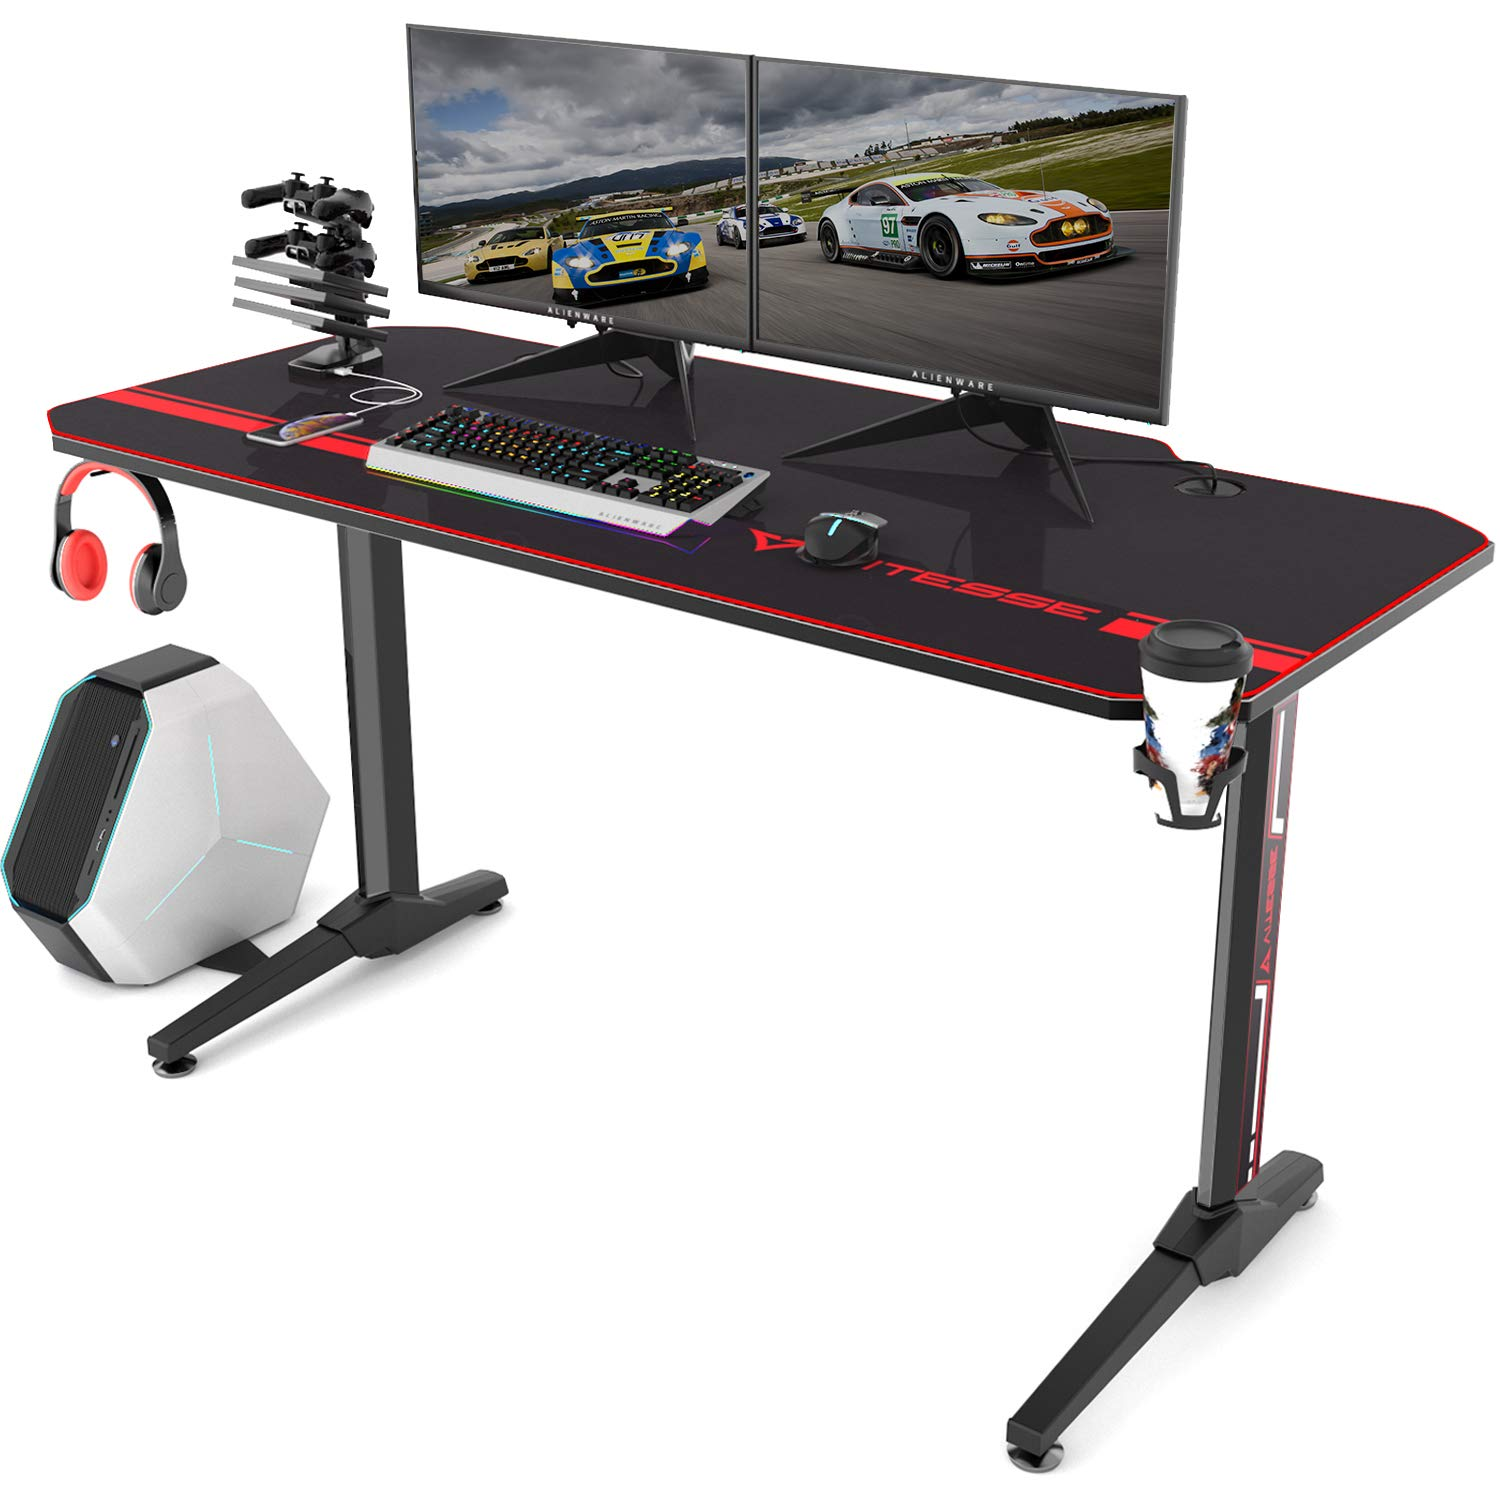 Vitesse 55 inch Gaming Desk T-Shaped Computer Desk with Free Large Mouse pad, Racing Style Professional Gamer Game Station with USB Gaming Handle Rack, Cup Holder & Headphone Hook by Waleaf